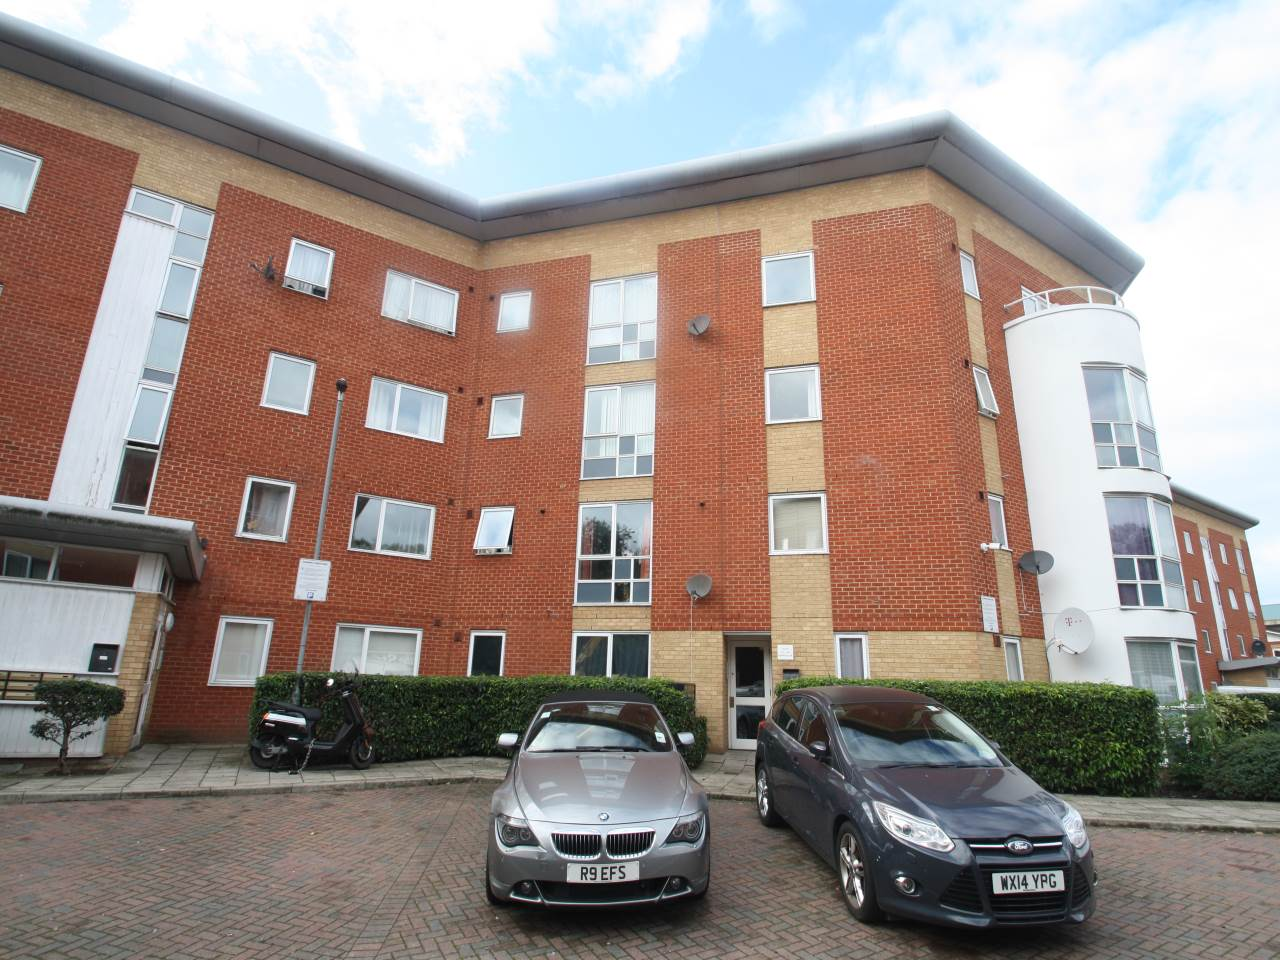 2 bed flat to rent in Albatross Close, Beckton, E6 5